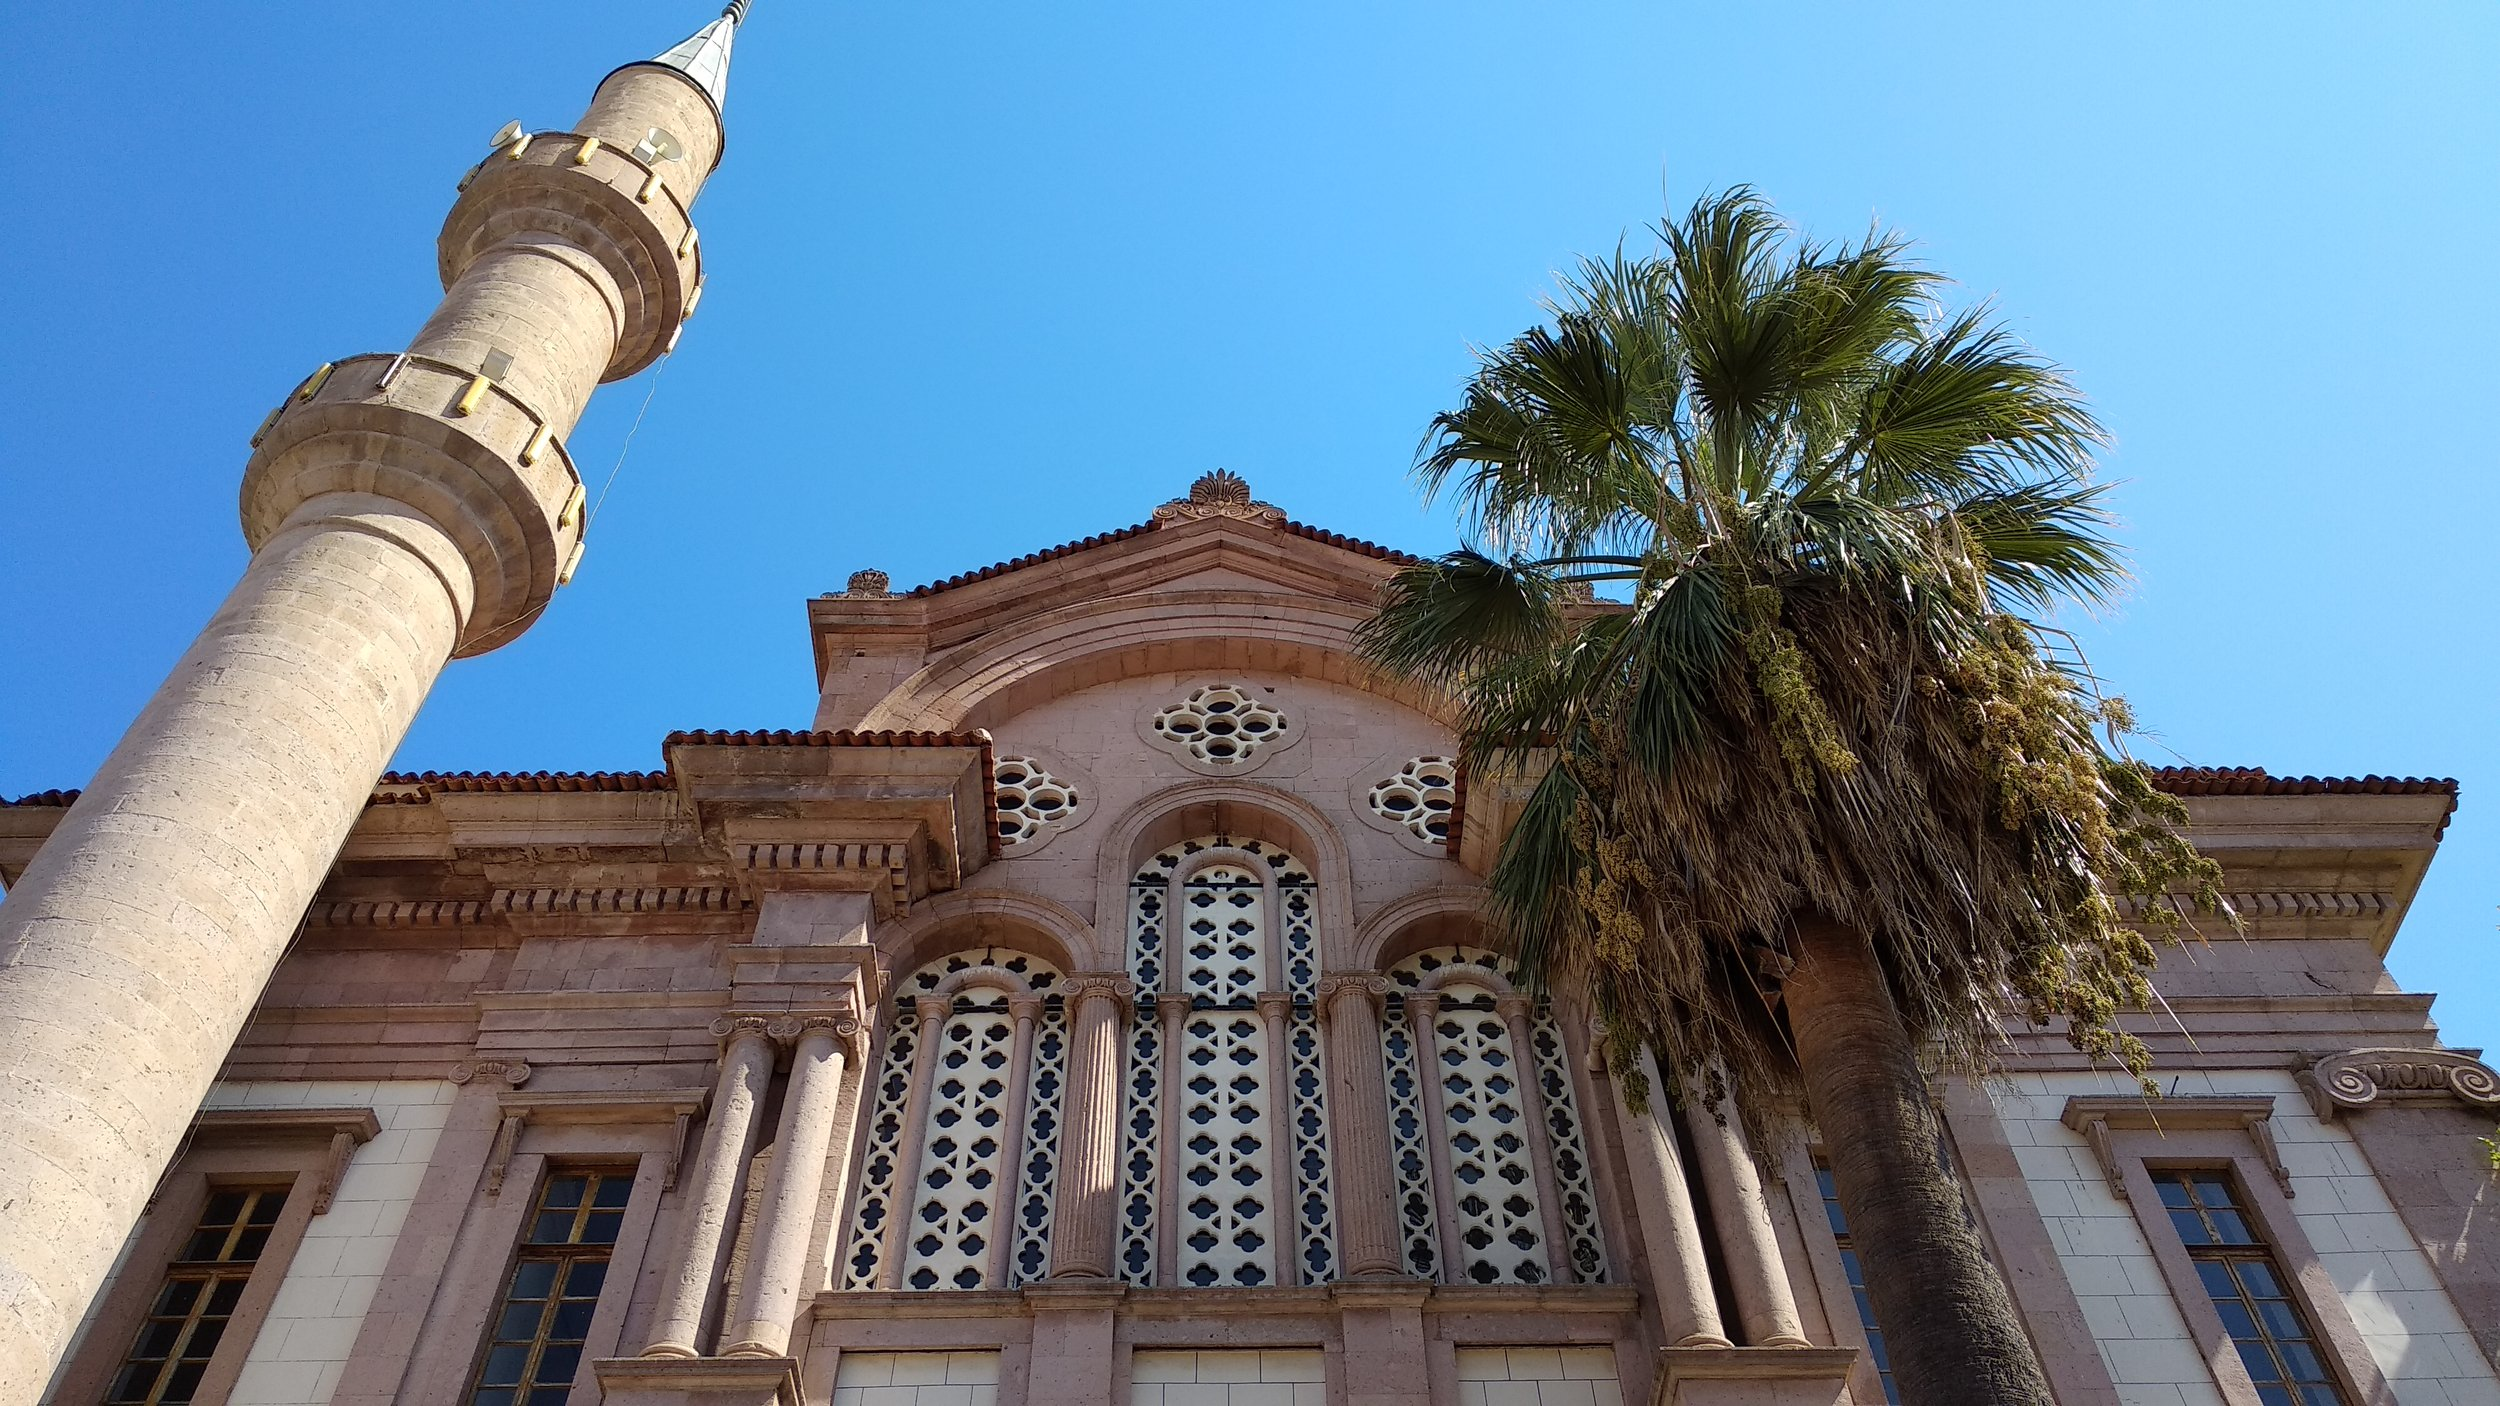 The Alibey Mosque was built in 1790 as the Greek Orthodox church of Ayios Yorgis and converted to a mosque in 1923